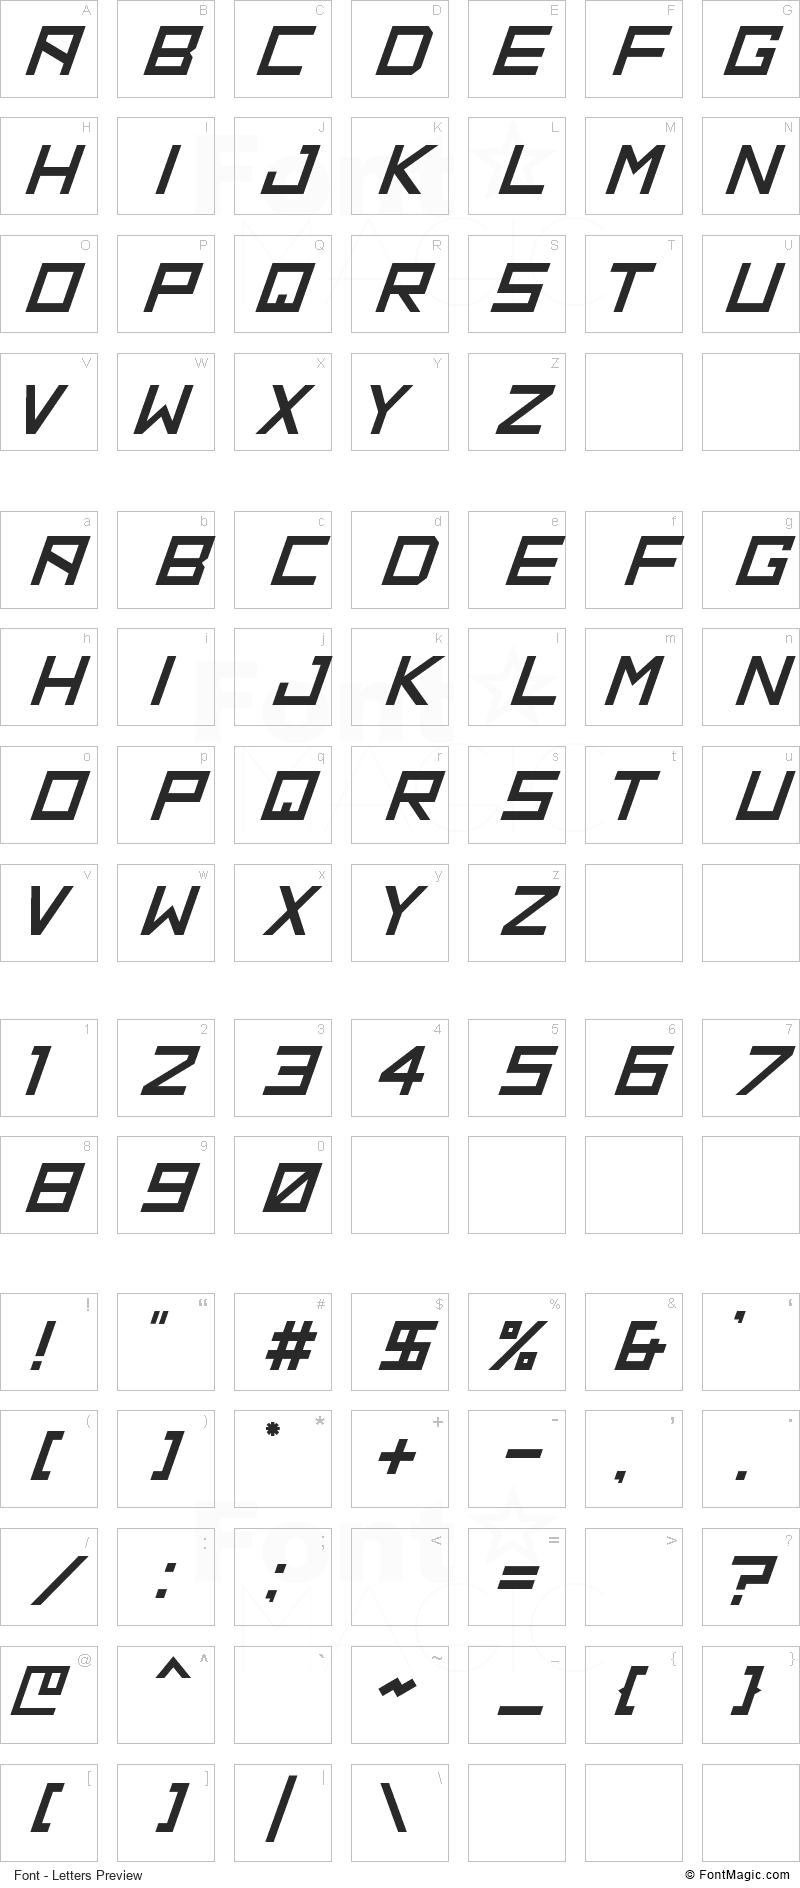 HBM Ridge Font - All Latters Preview Chart